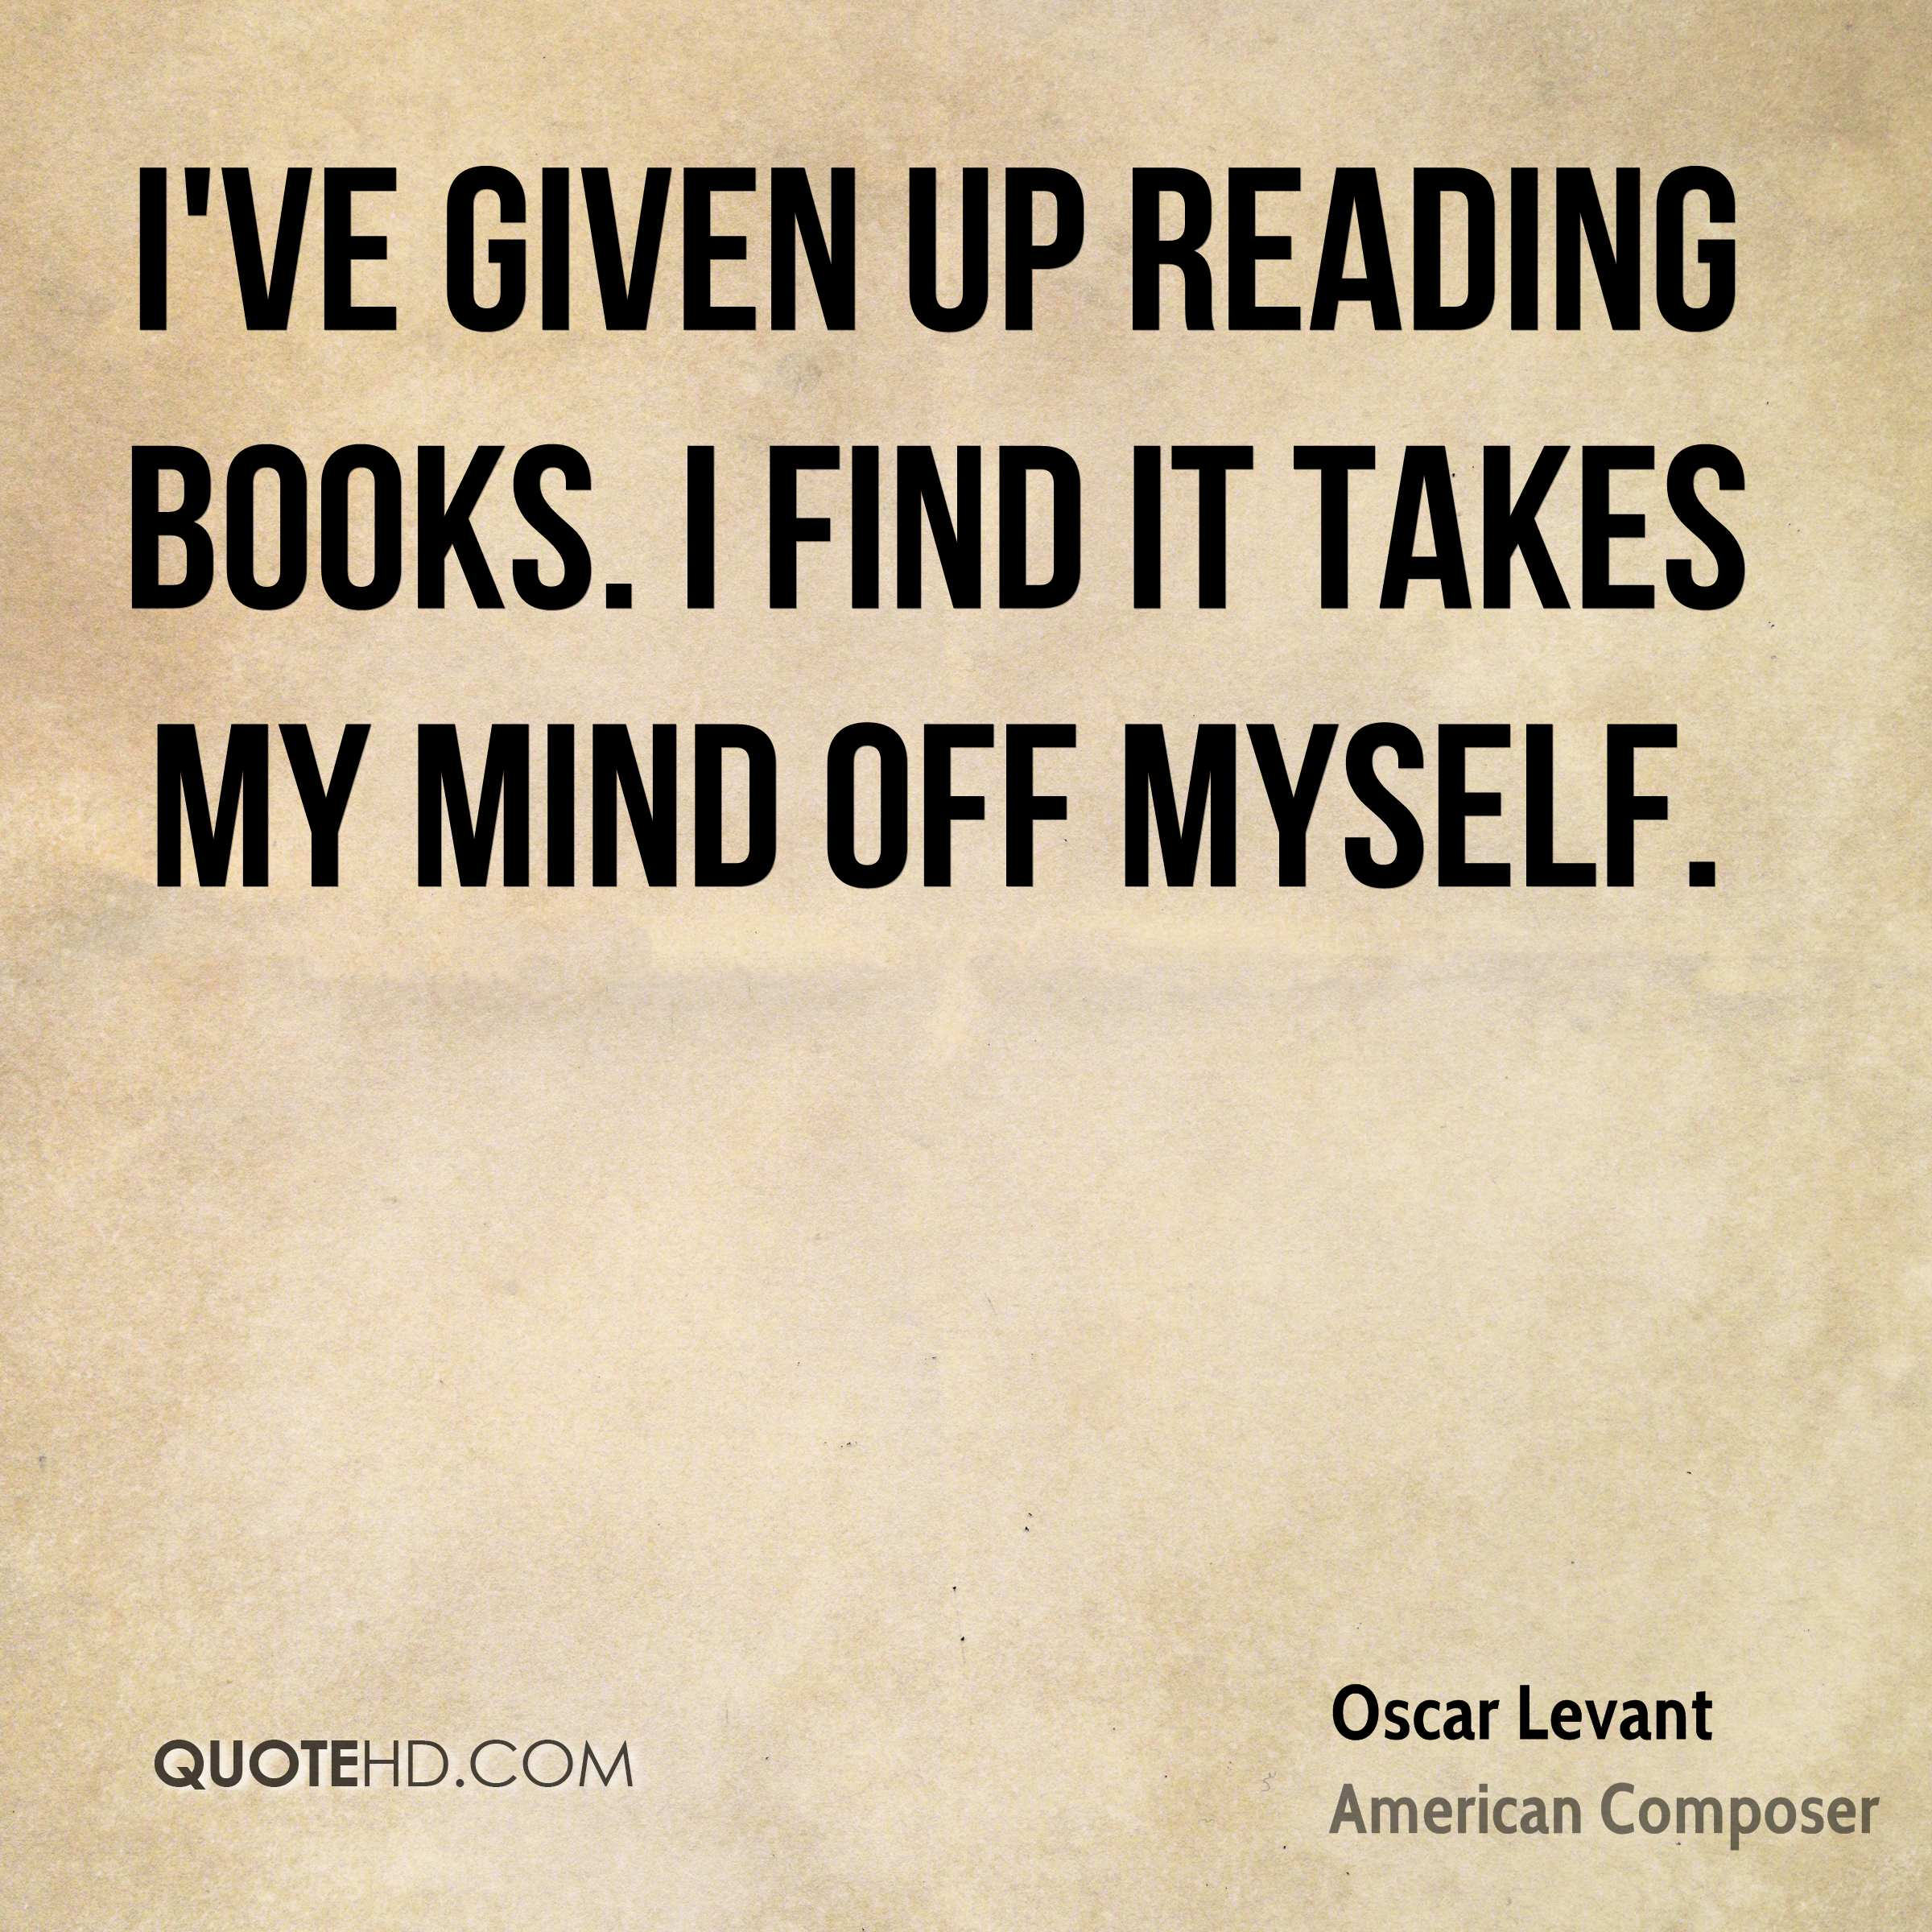 I've given up reading books. I find it takes my mind off myself.